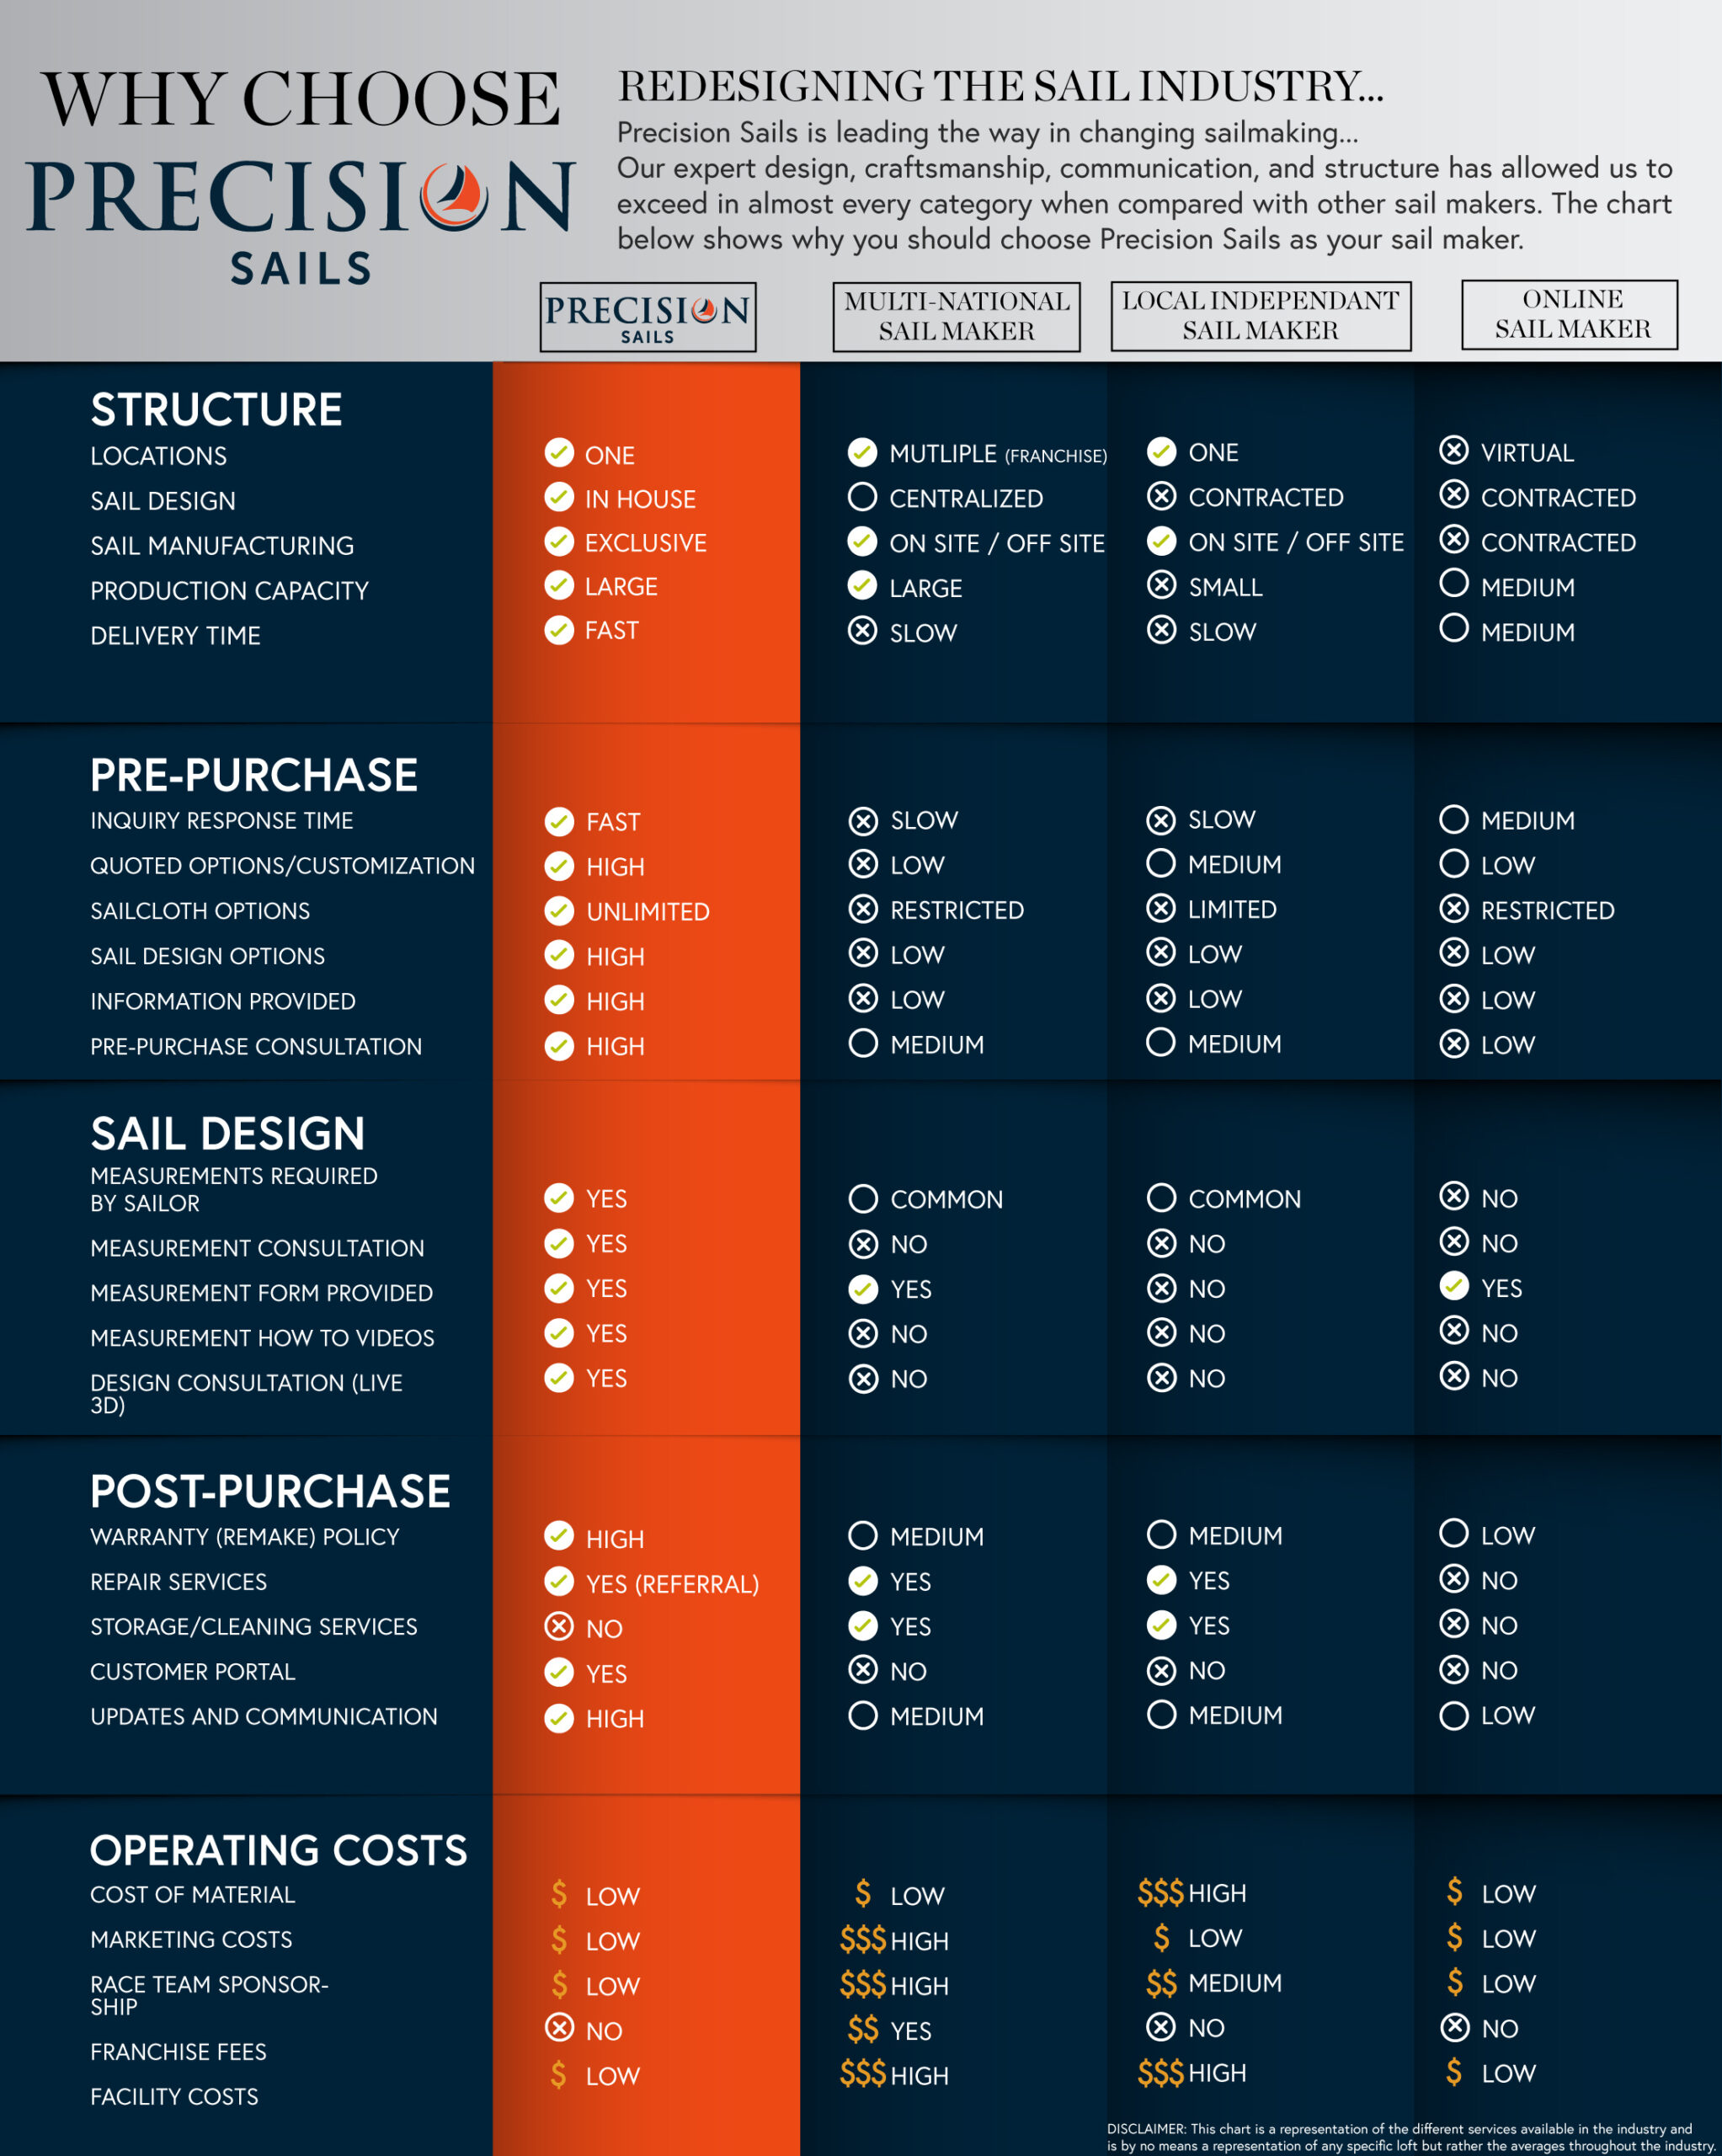 this infographic describes the characteristics of how Precision sails works as a brand and compares that to other competition